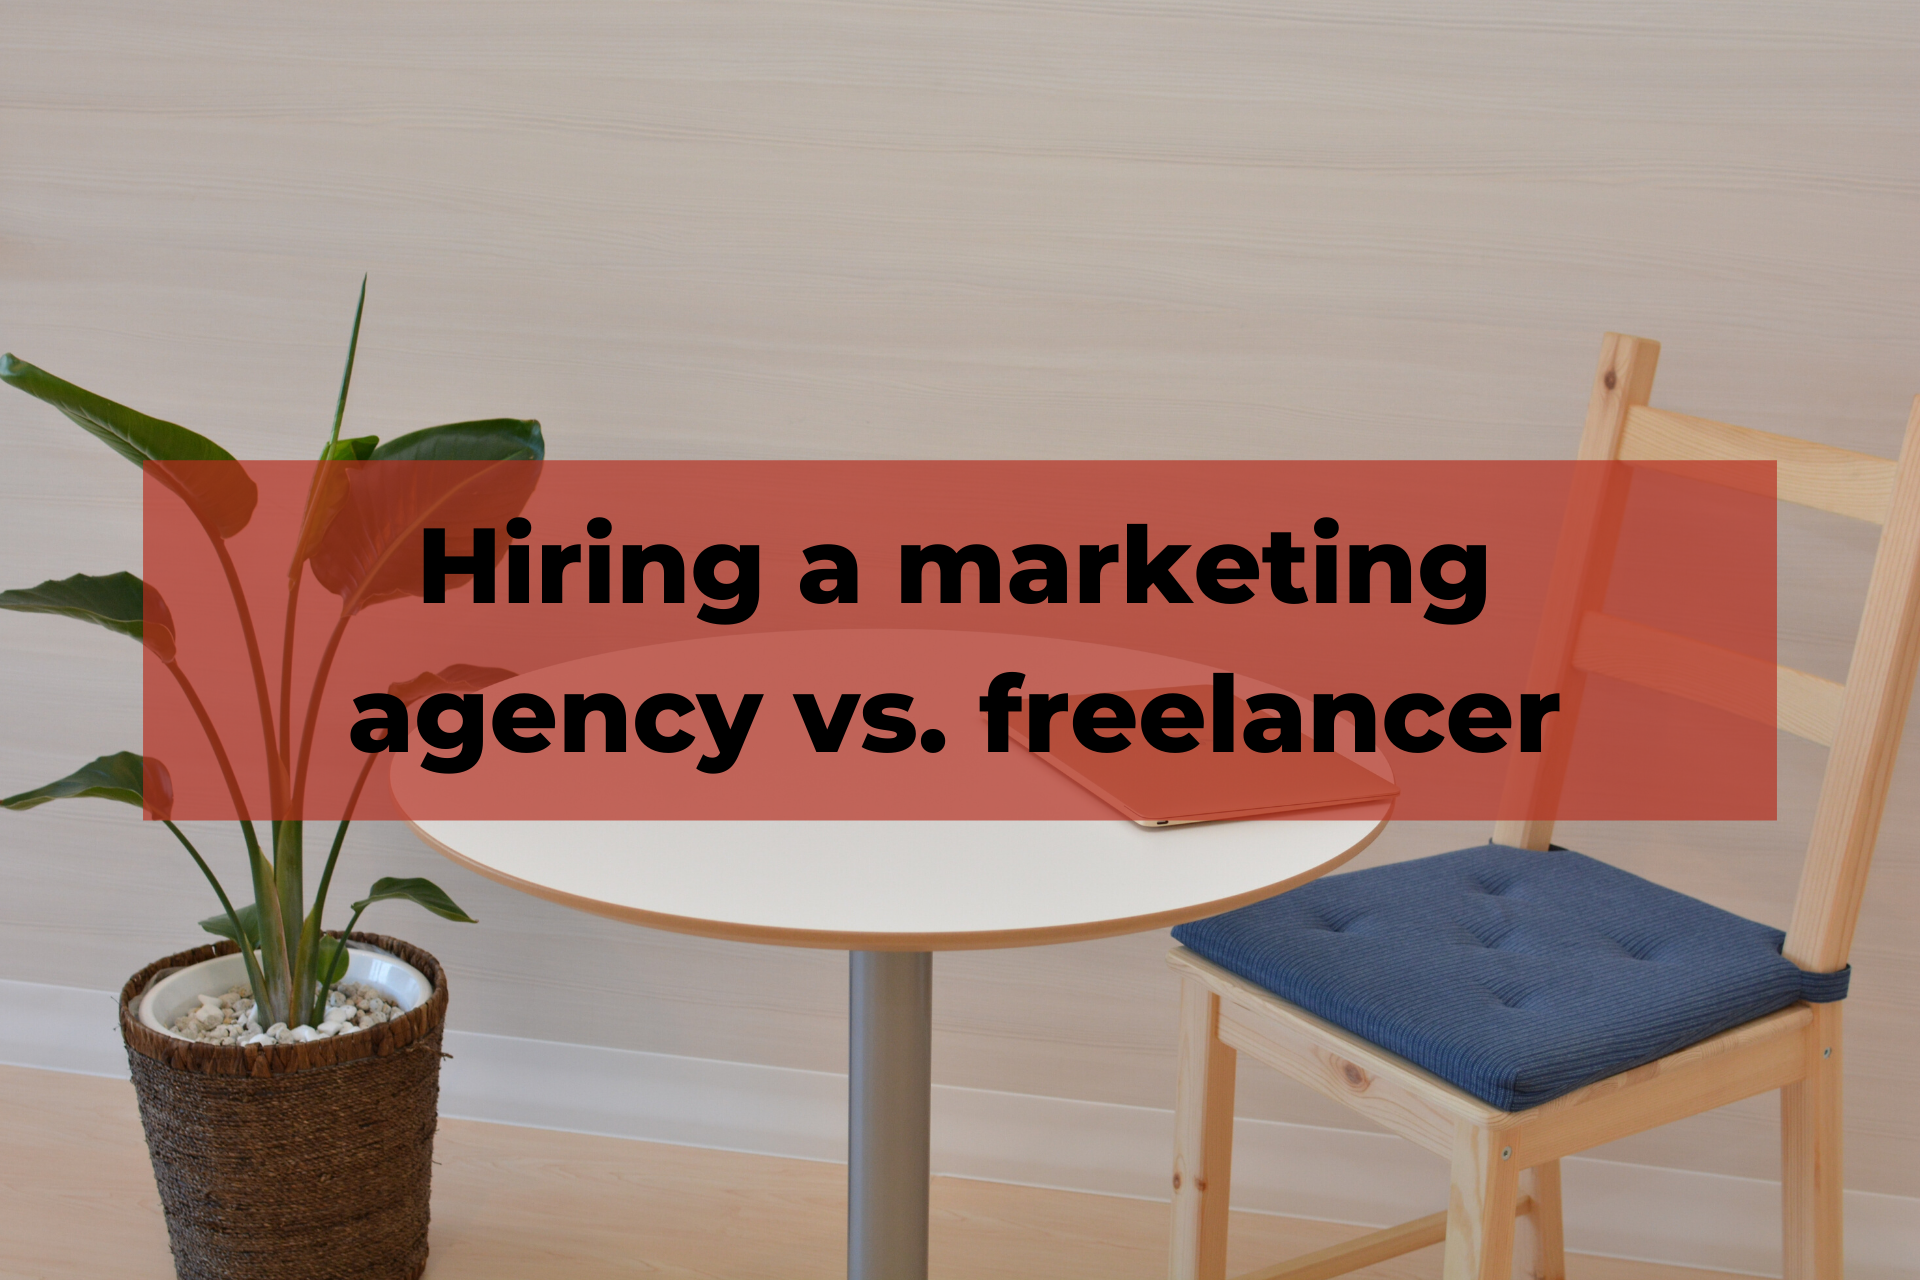 Digital marketing agency vs. freelancer - Which to hire, and when?